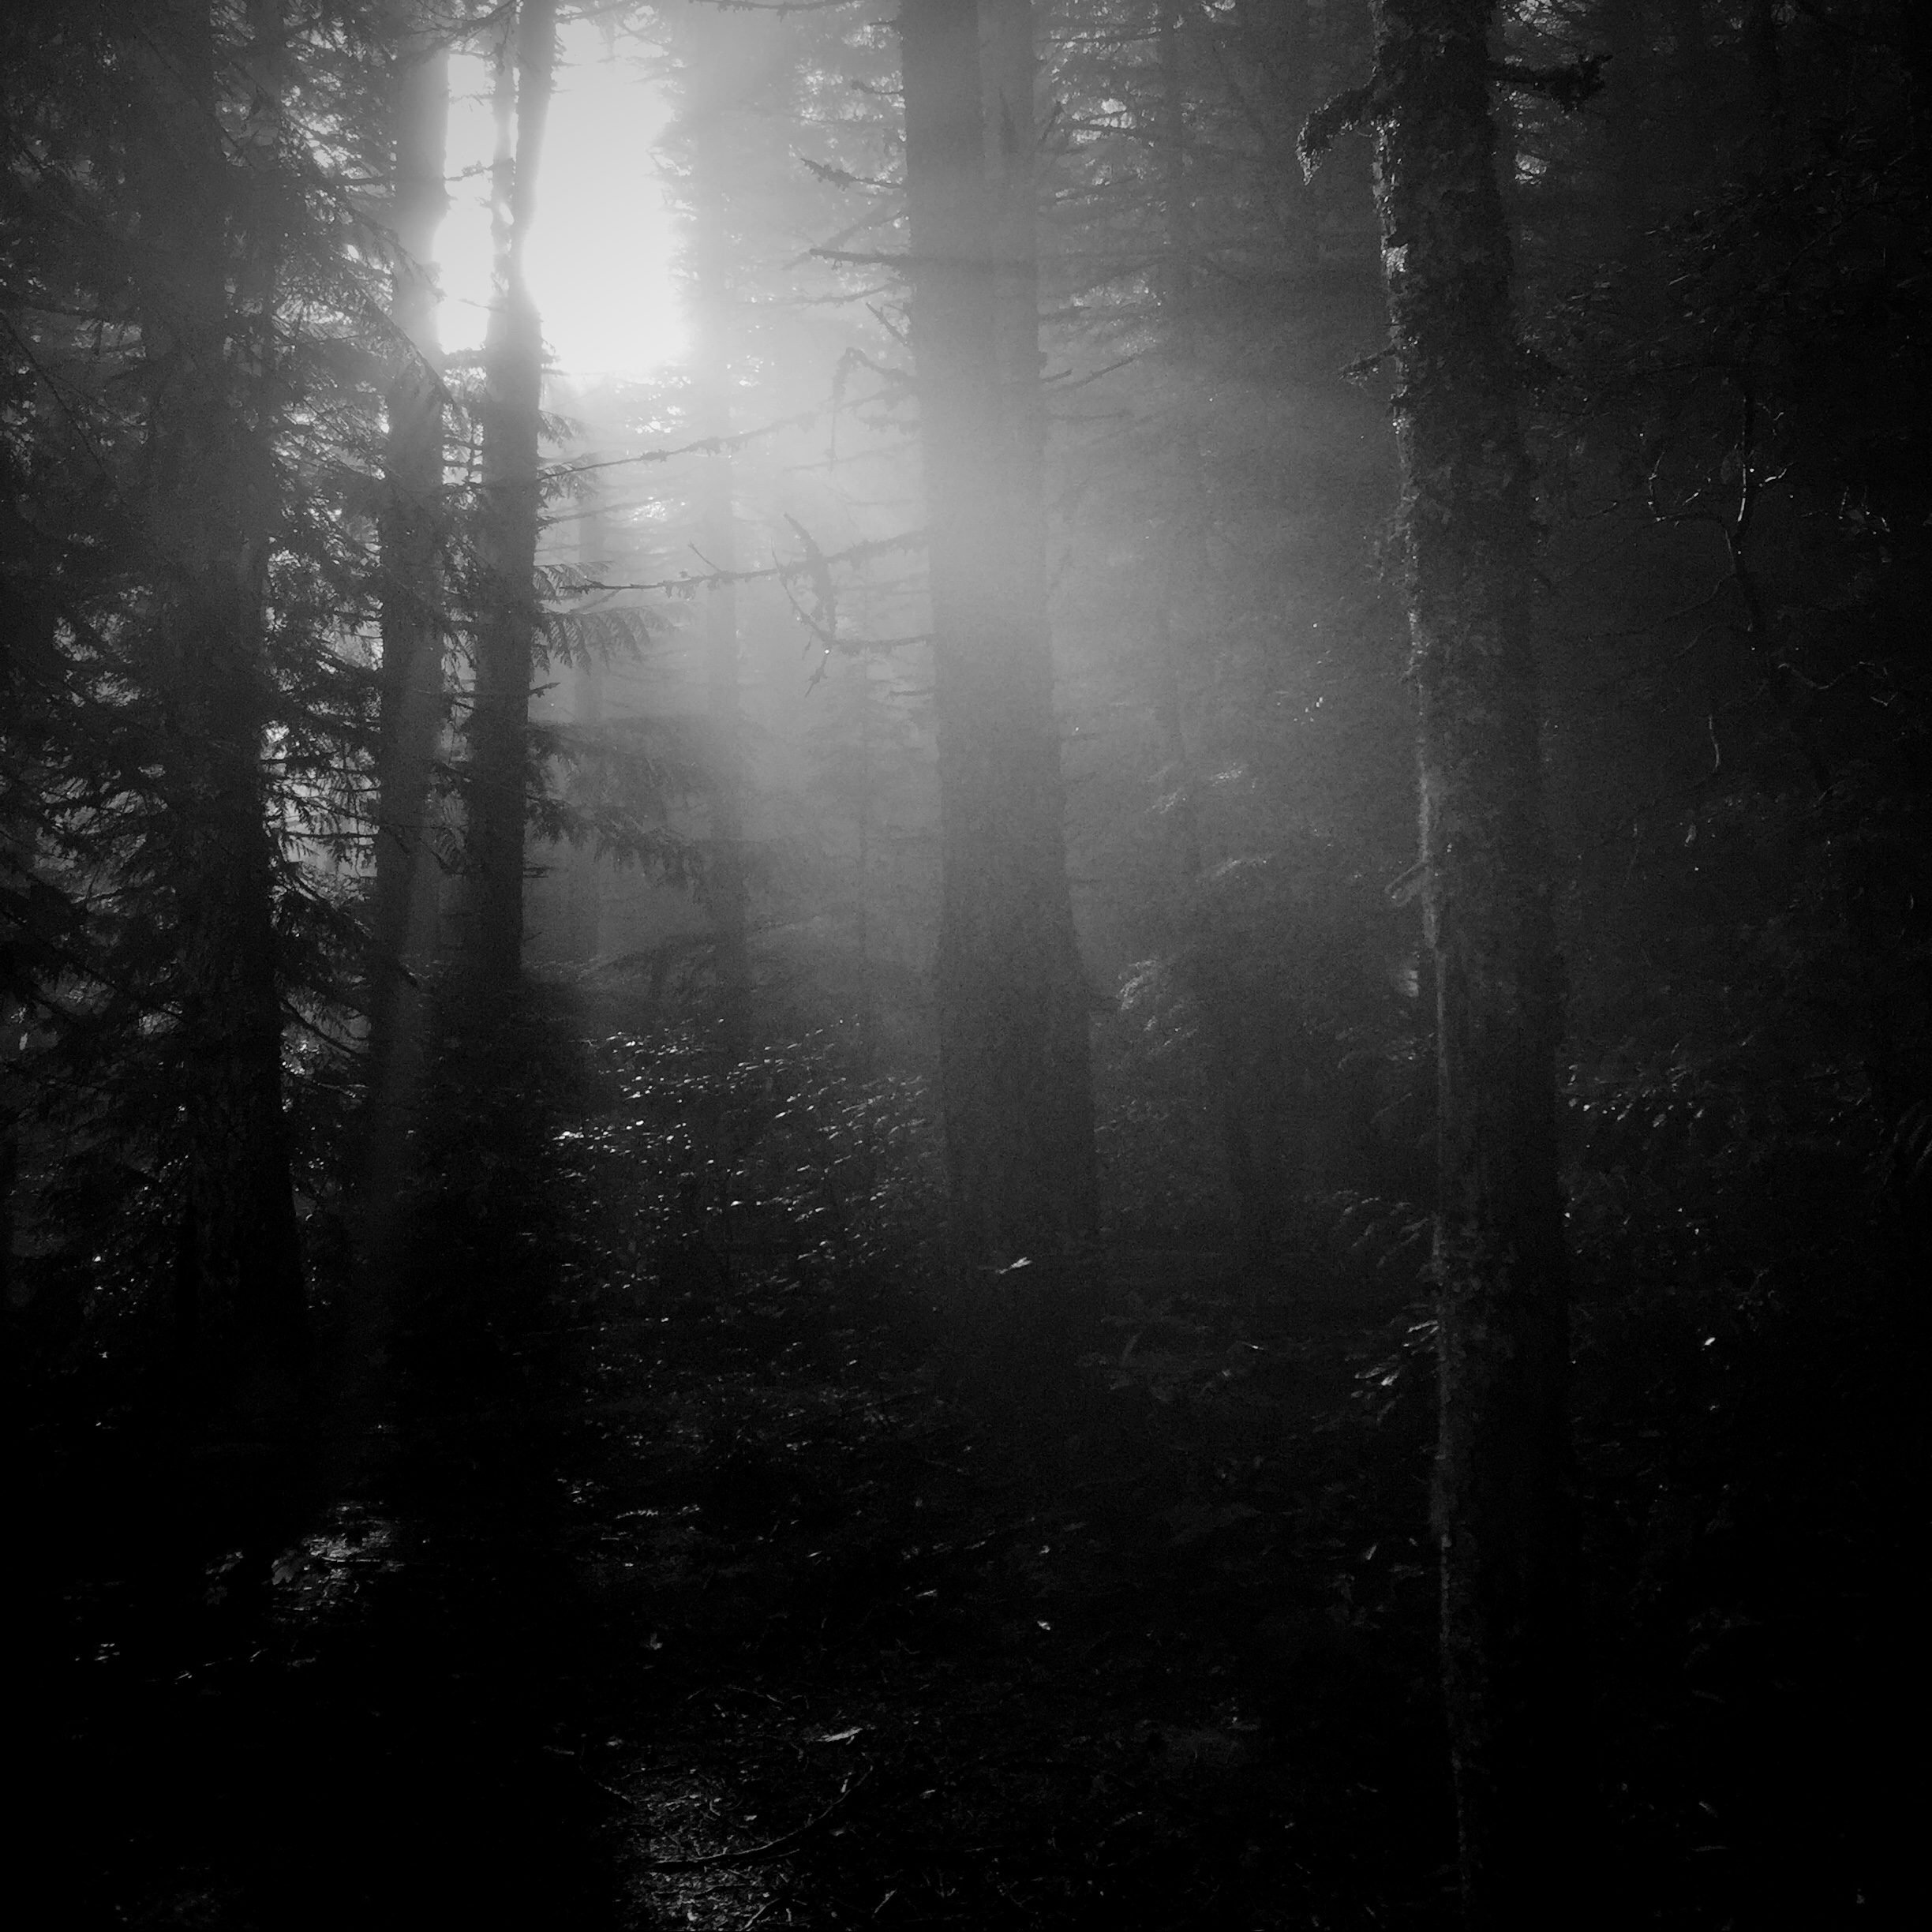 a picture of sunlight shining through some rather dark trees up at the mountain near a lake